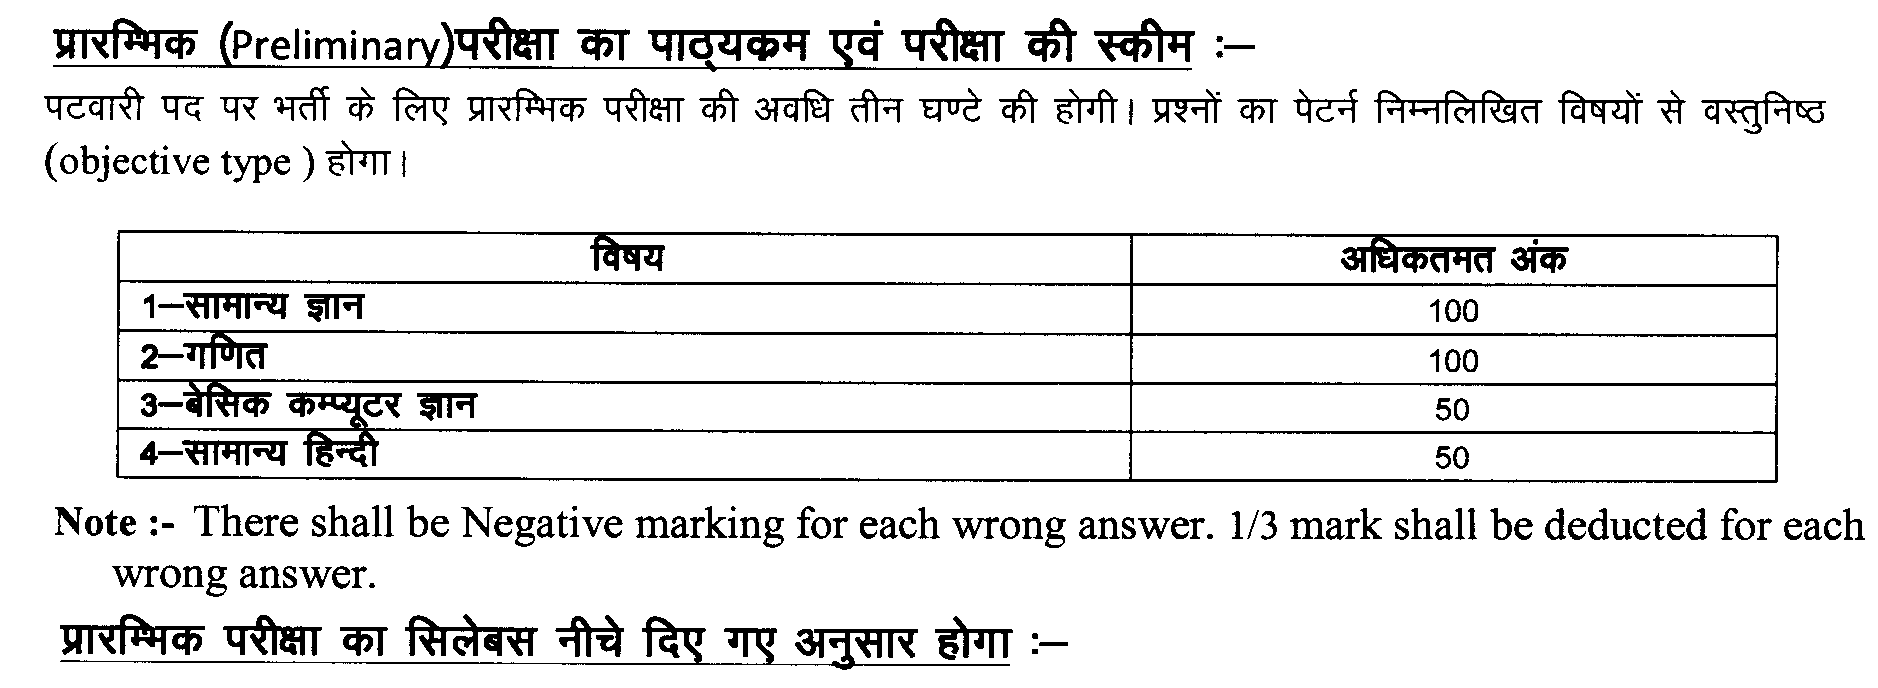 Rajasthan Patwari Exam Pattern 2018 (Preliminary)